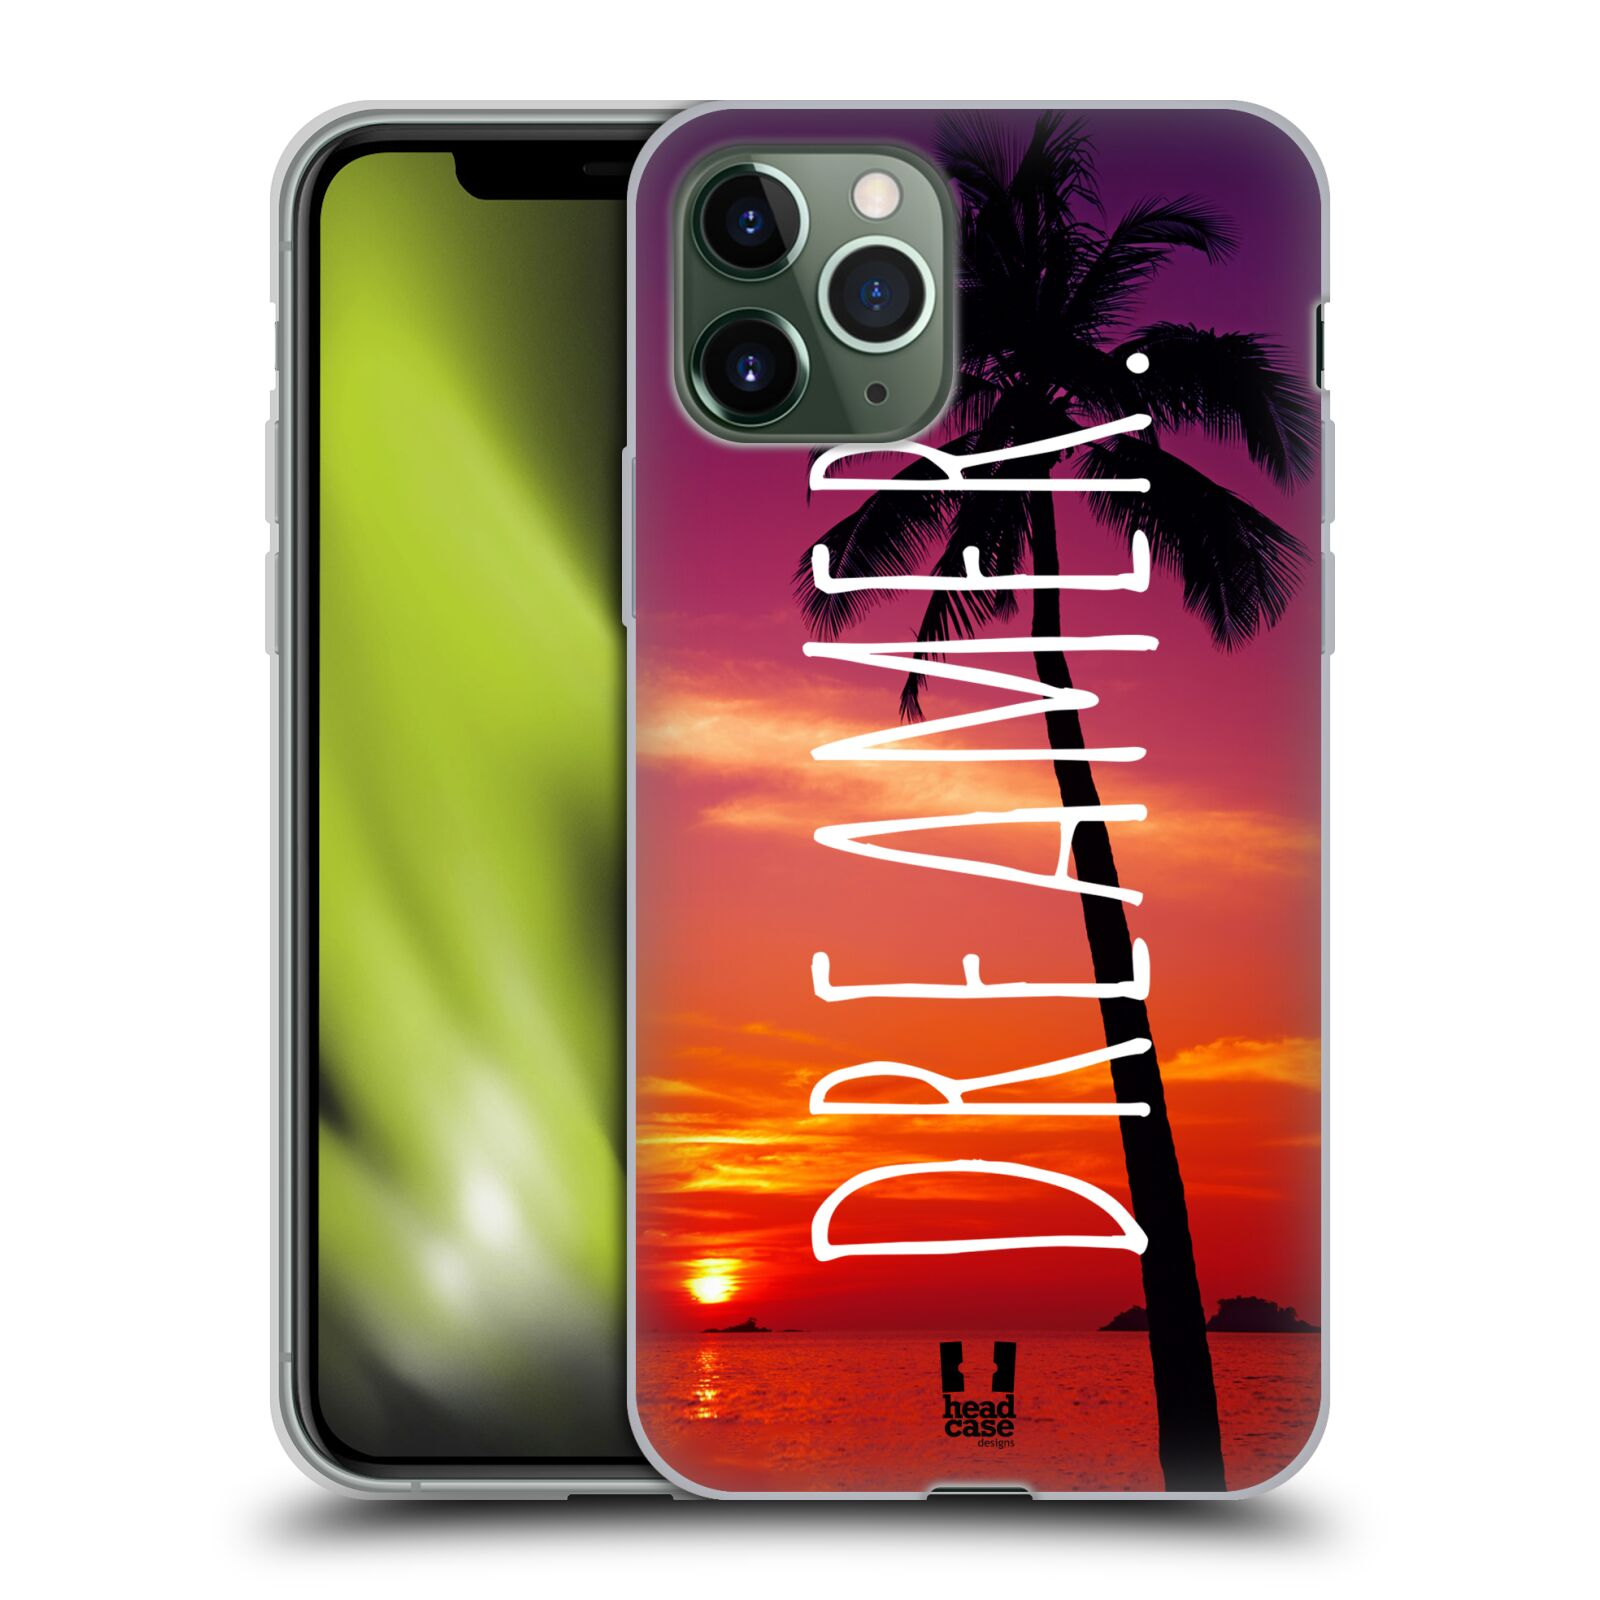 iphone bazar - Silikonové pouzdro na mobil Apple iPhone 11 Pro - Head Case - MIX DREAMER